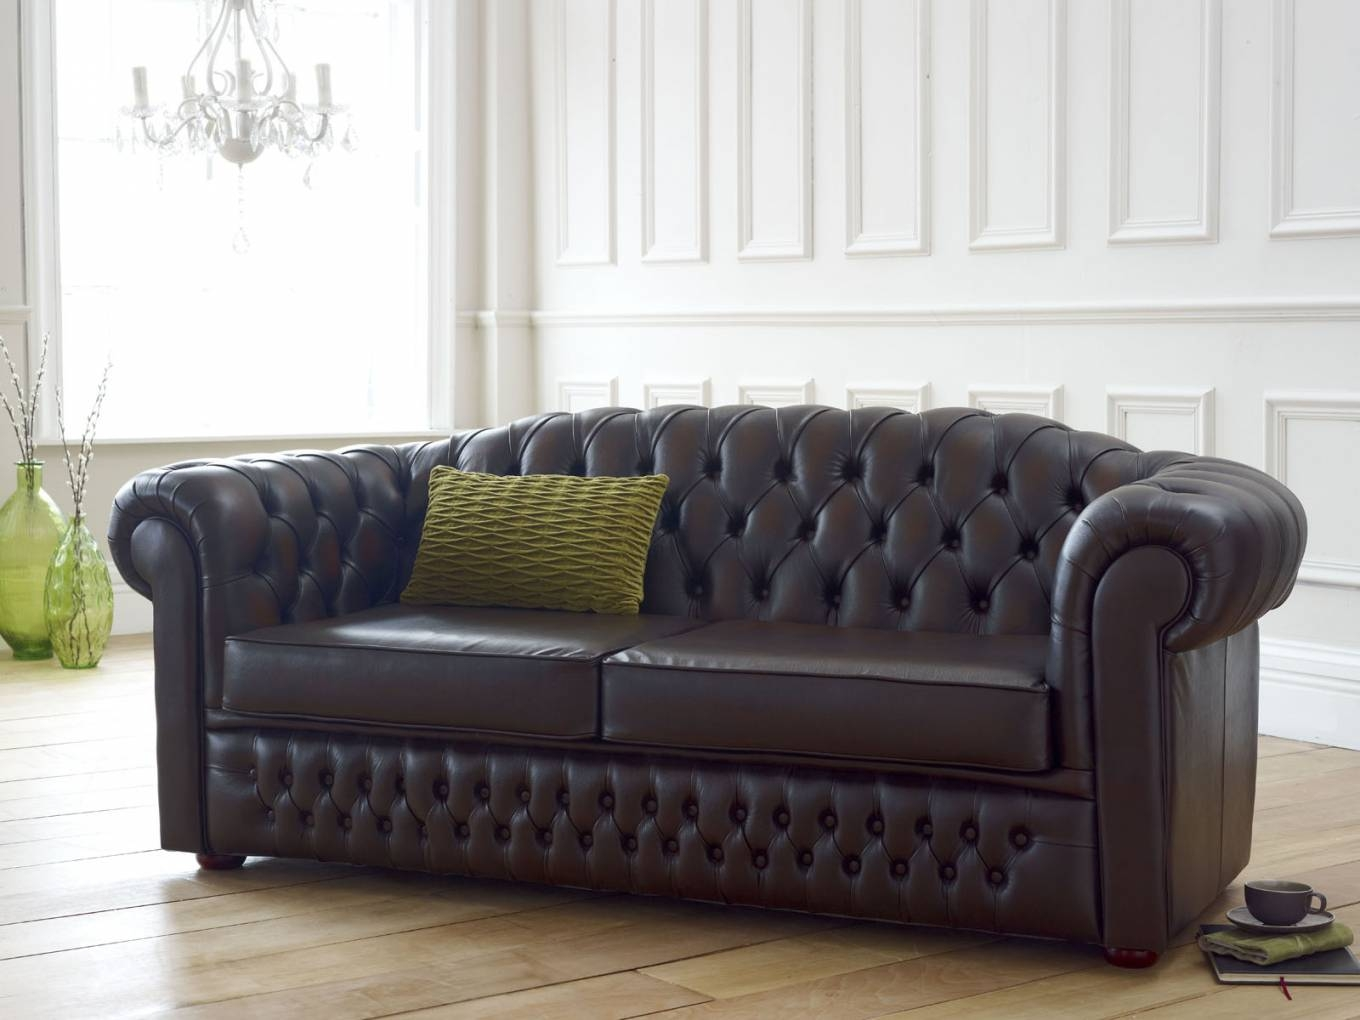 High Quality Sofas regarding Sofa Accessories (Image 13 of 30)